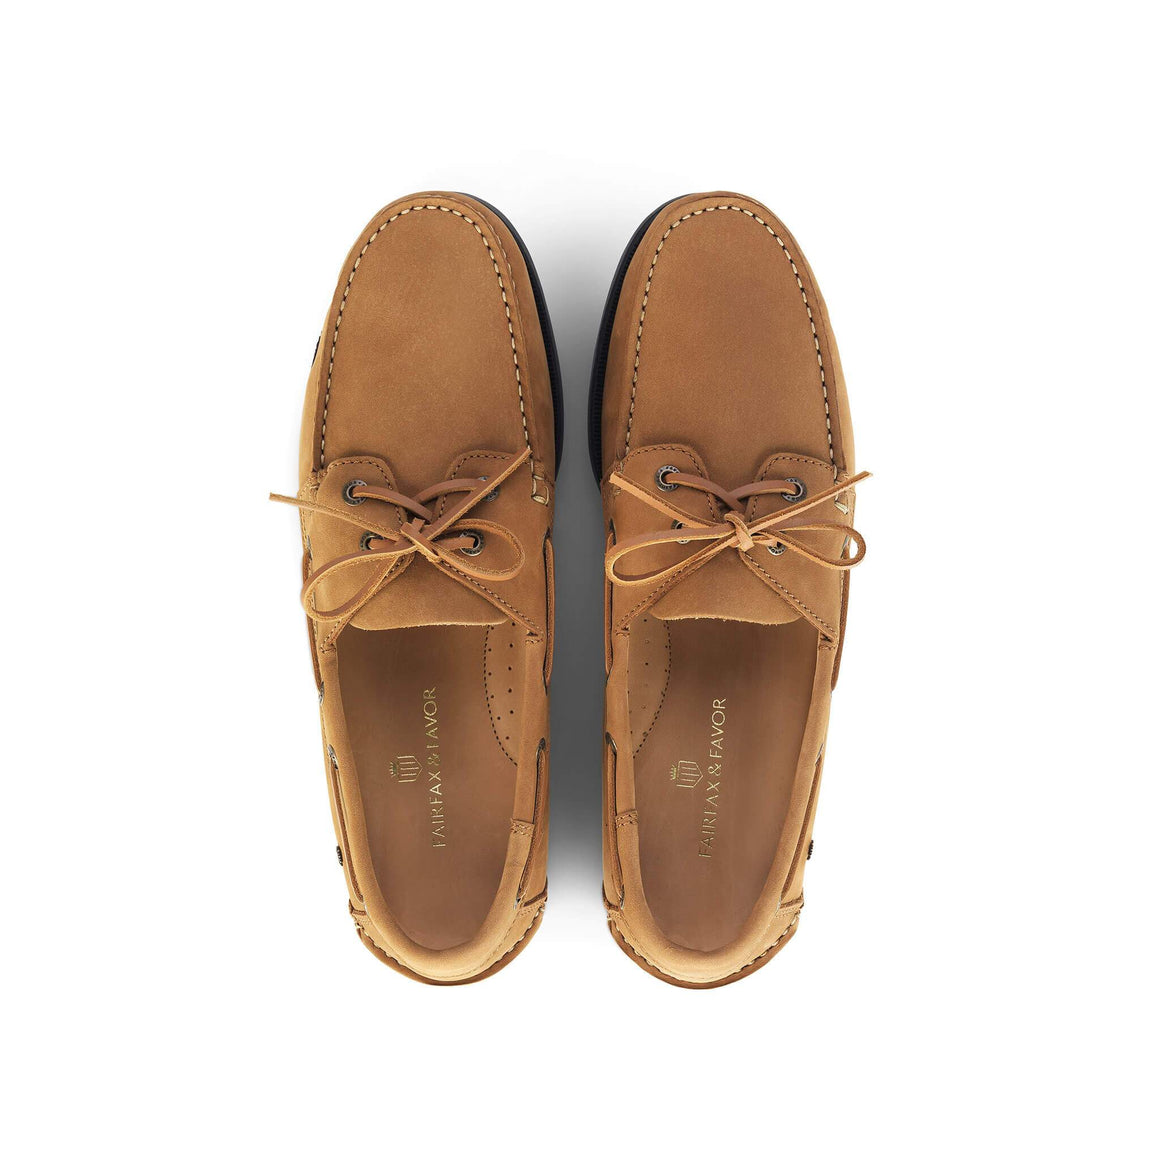 Fairfax & Favor Padstow mens deck shoe in tan - RedMillsStore.ie